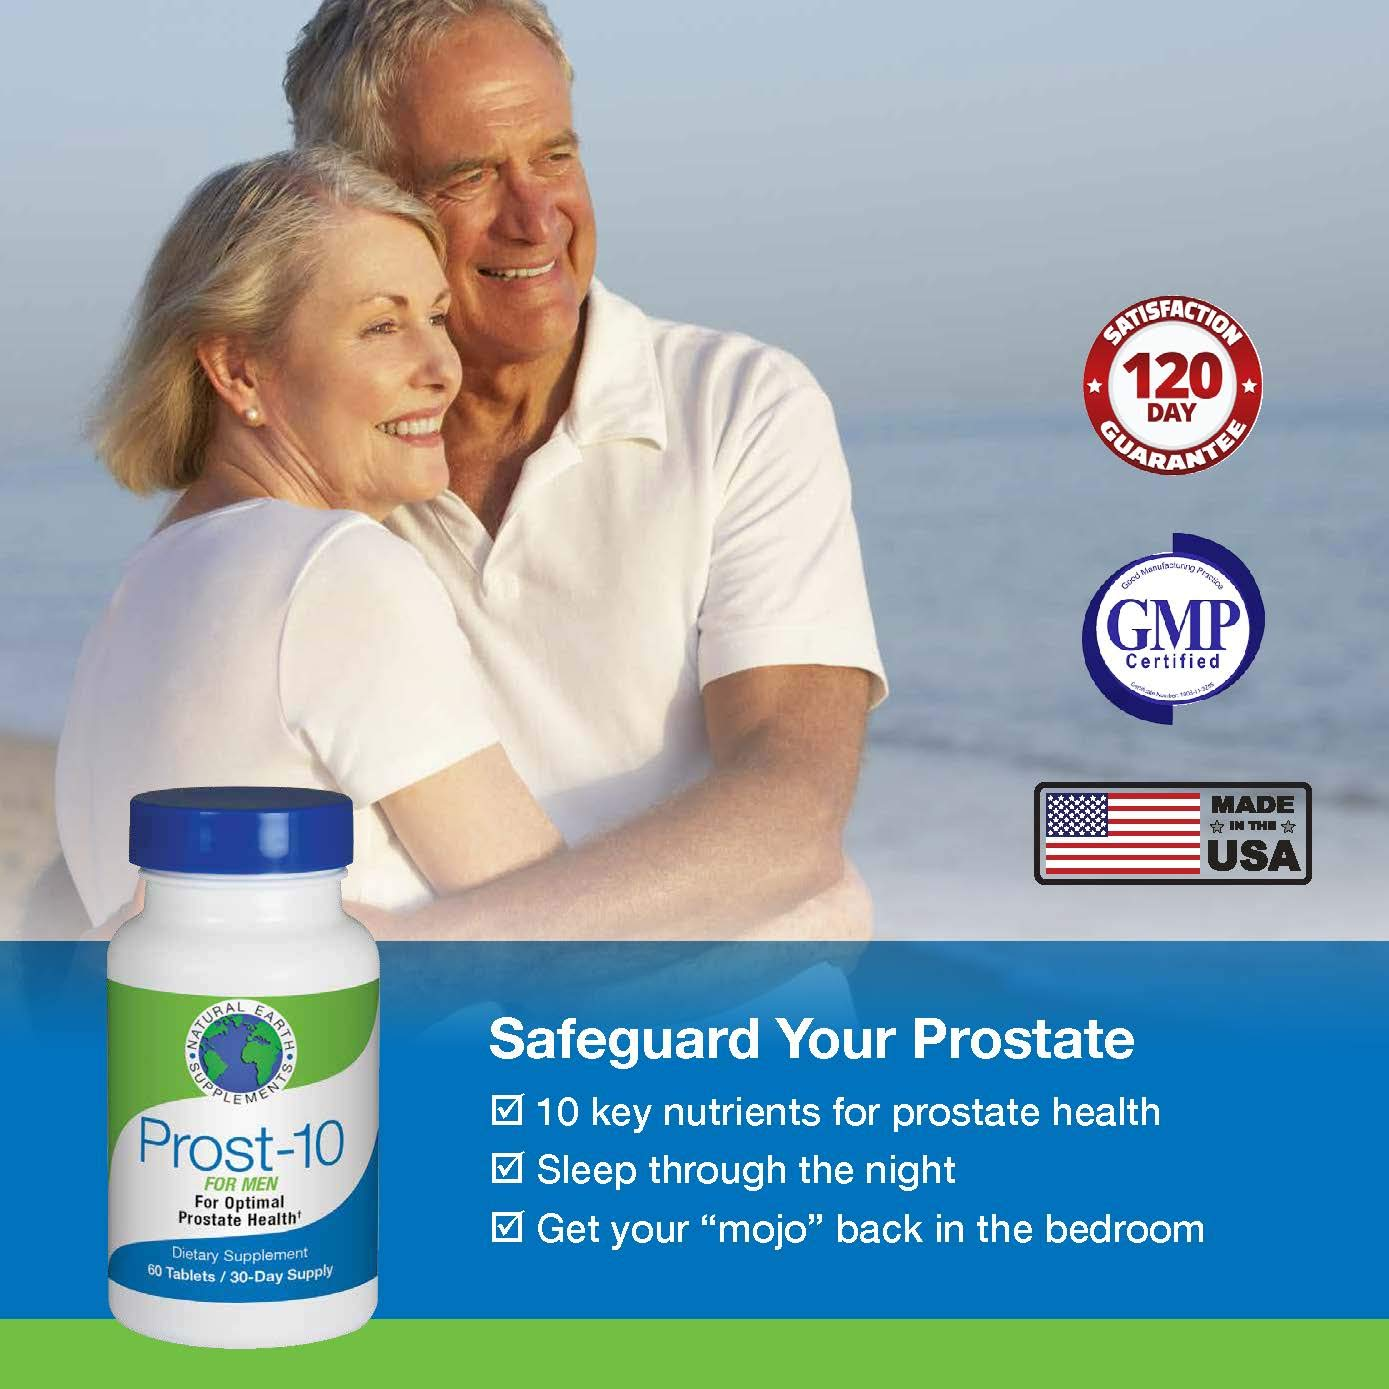 Natural Earth Supplements Prost-10 Prostate Supplement. Reduces Bathroom Trips and Promotes Sleep. Supports Prostate and Urinary Health and Better Bladder Emptying. 180 Day Supply